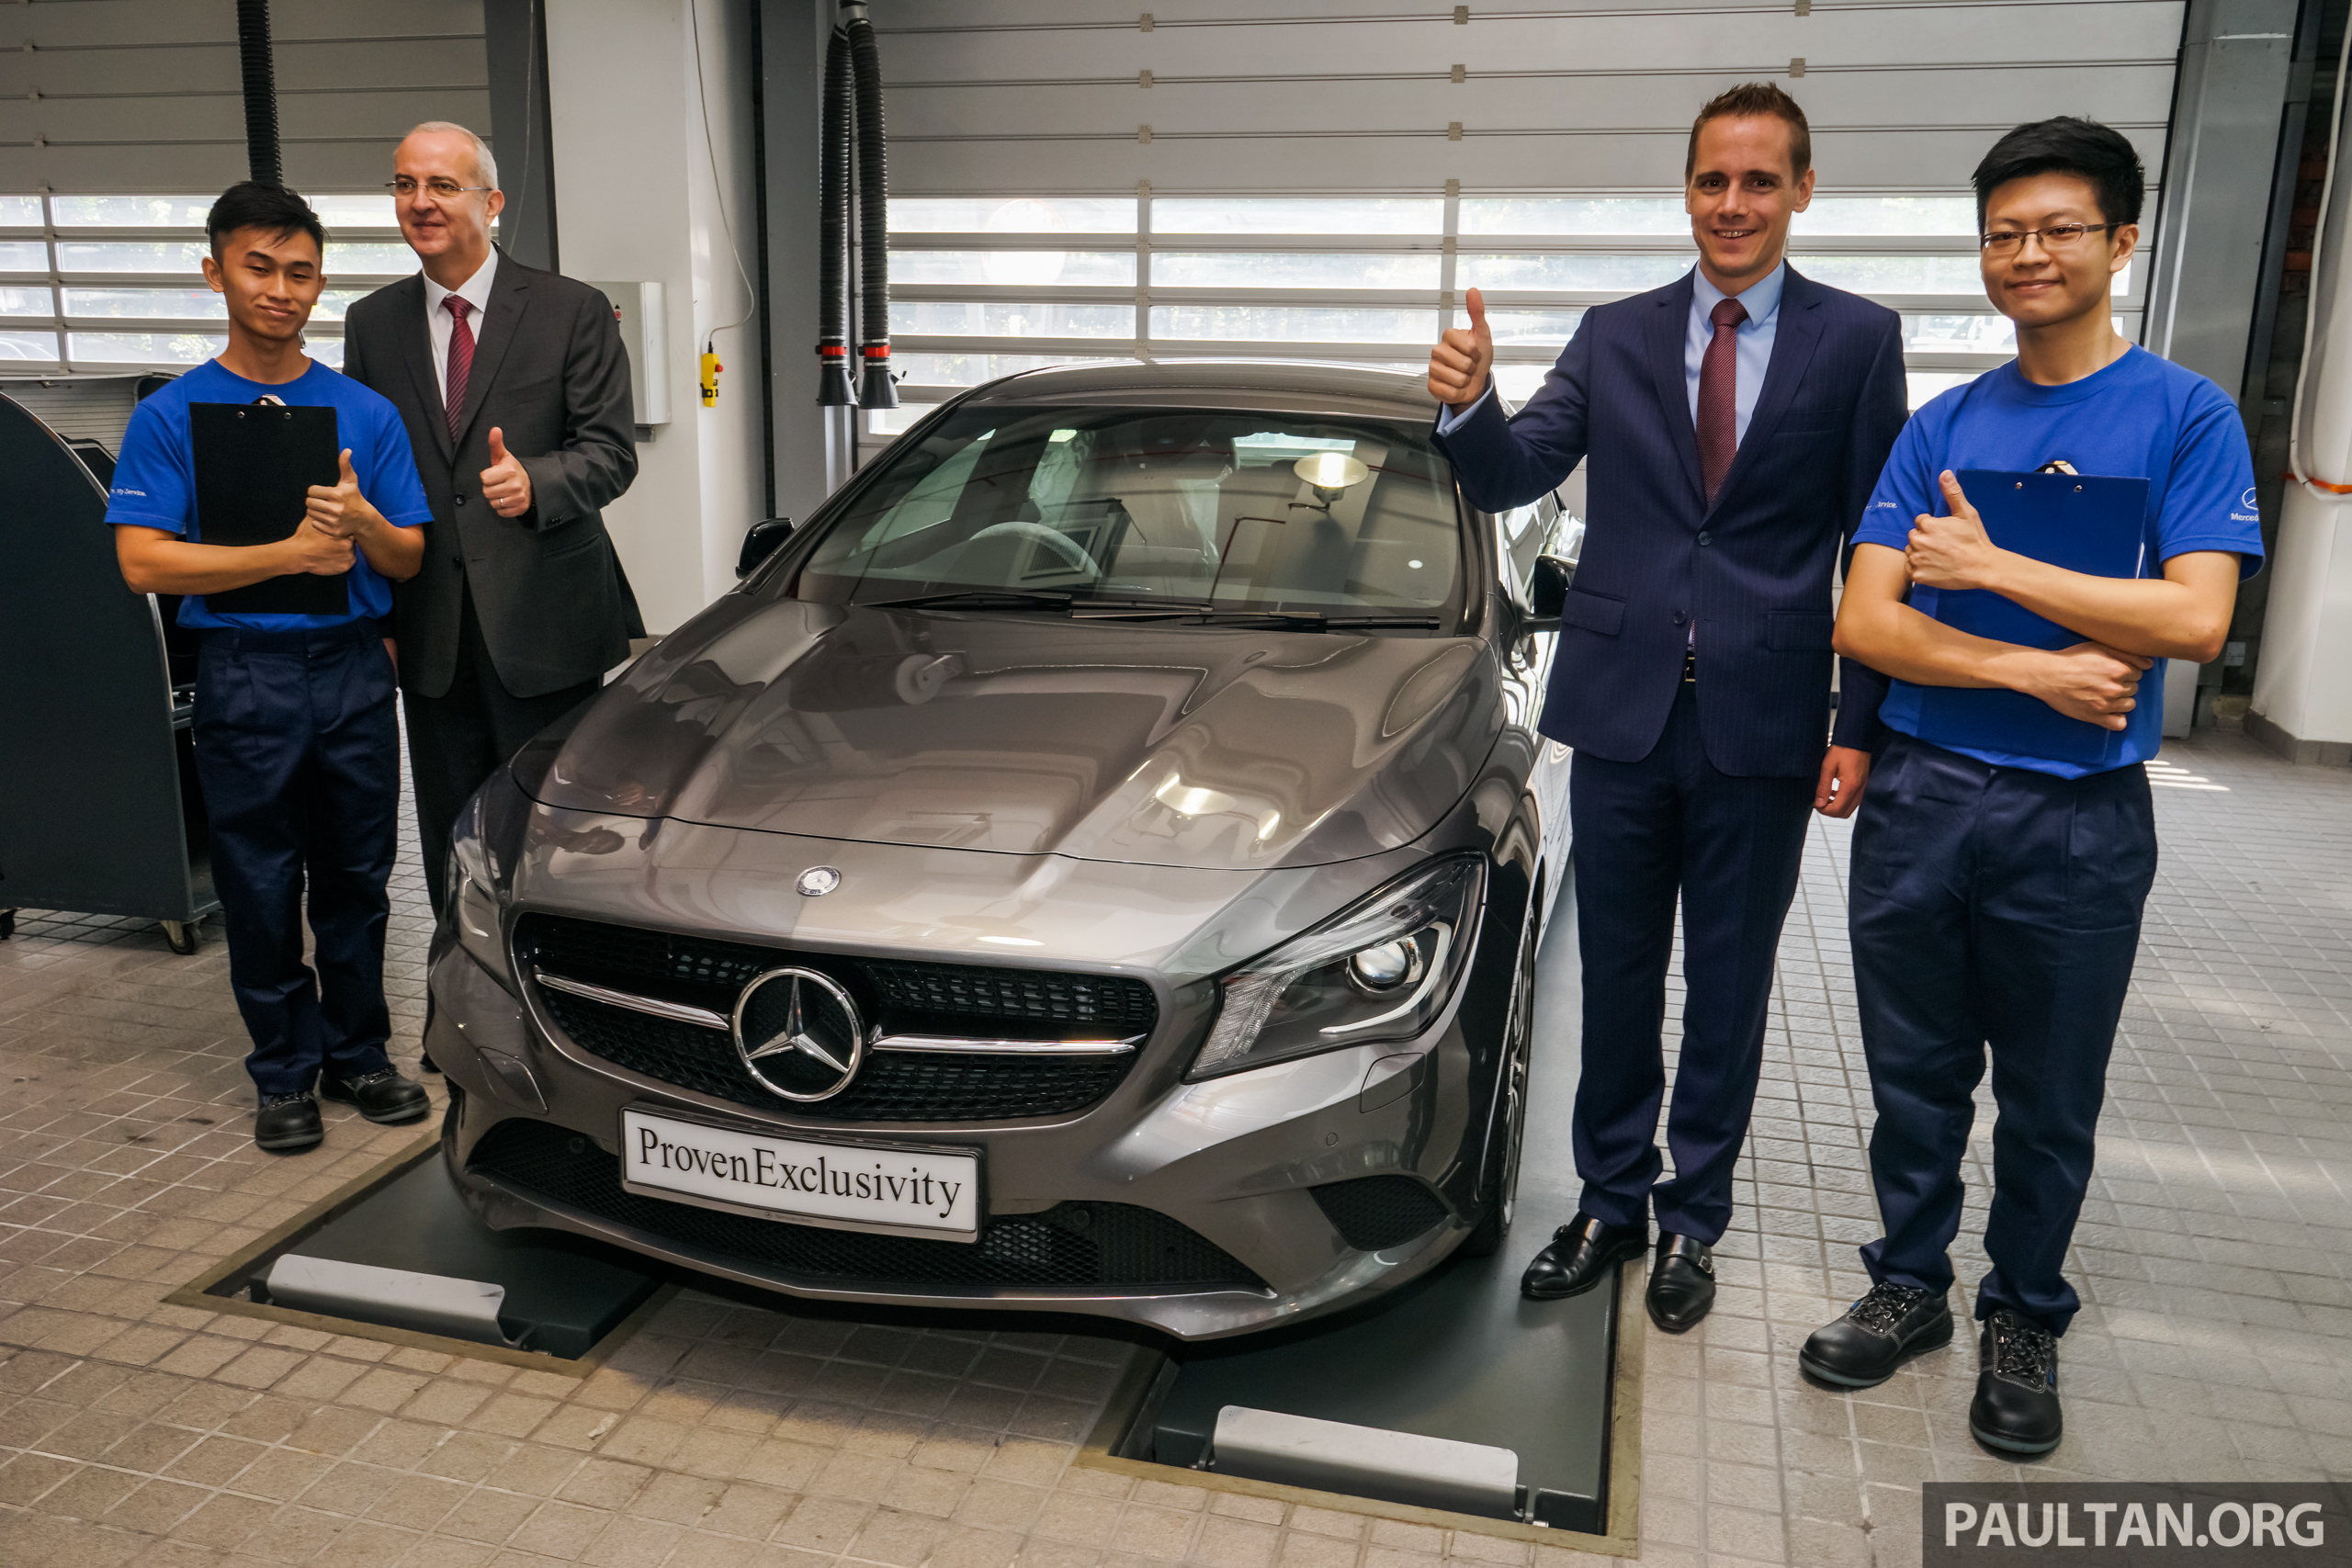 Mercedes benz hap seng star balakong proven exclusivity for Mercedes benz prepaid maintenance